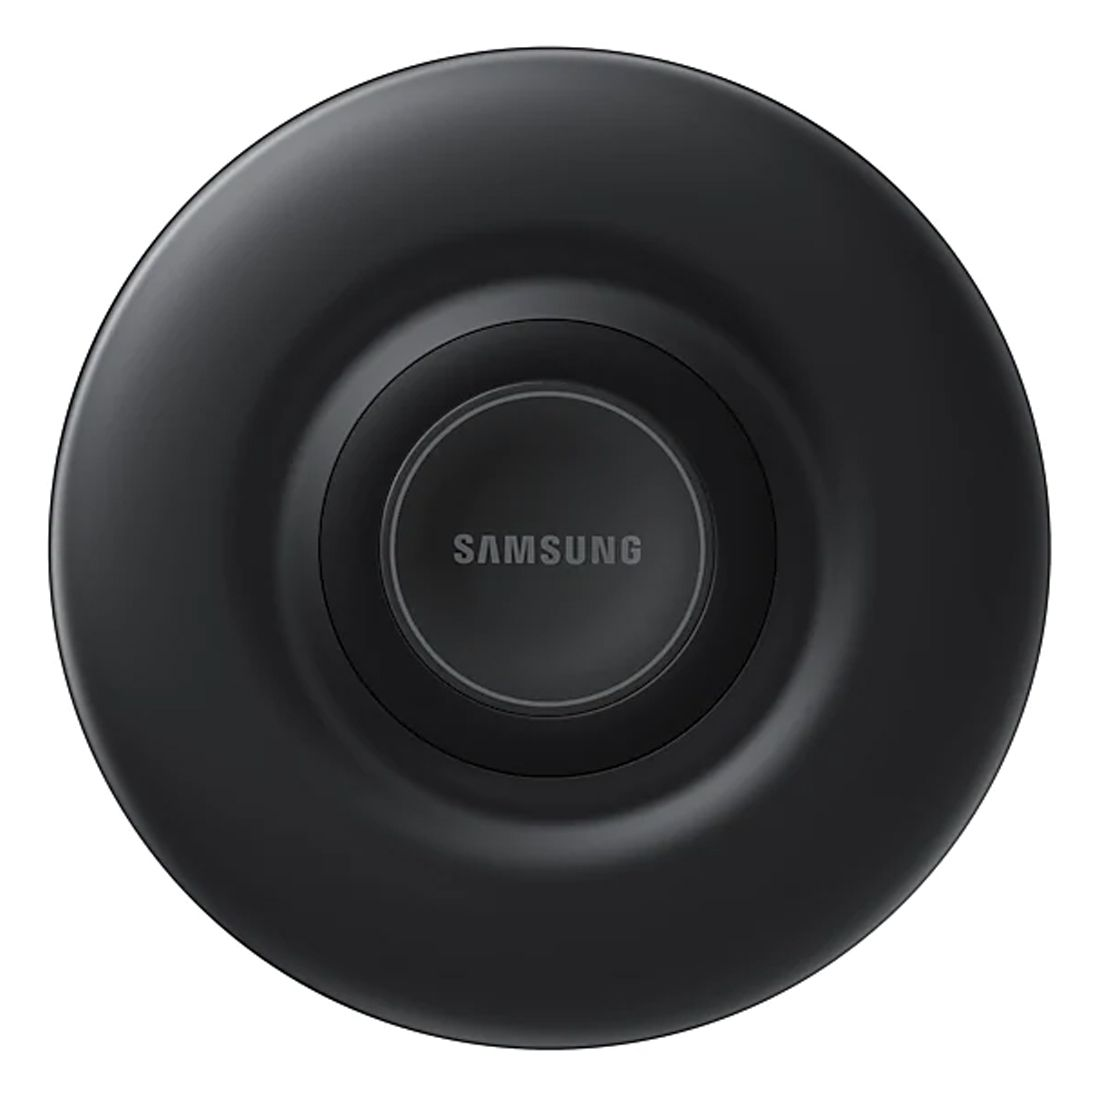 Samsung 9W Fast Charge Round Wireless Charger Pad EP-P3105TBEGAU (For iOS/Andoriod) - Black